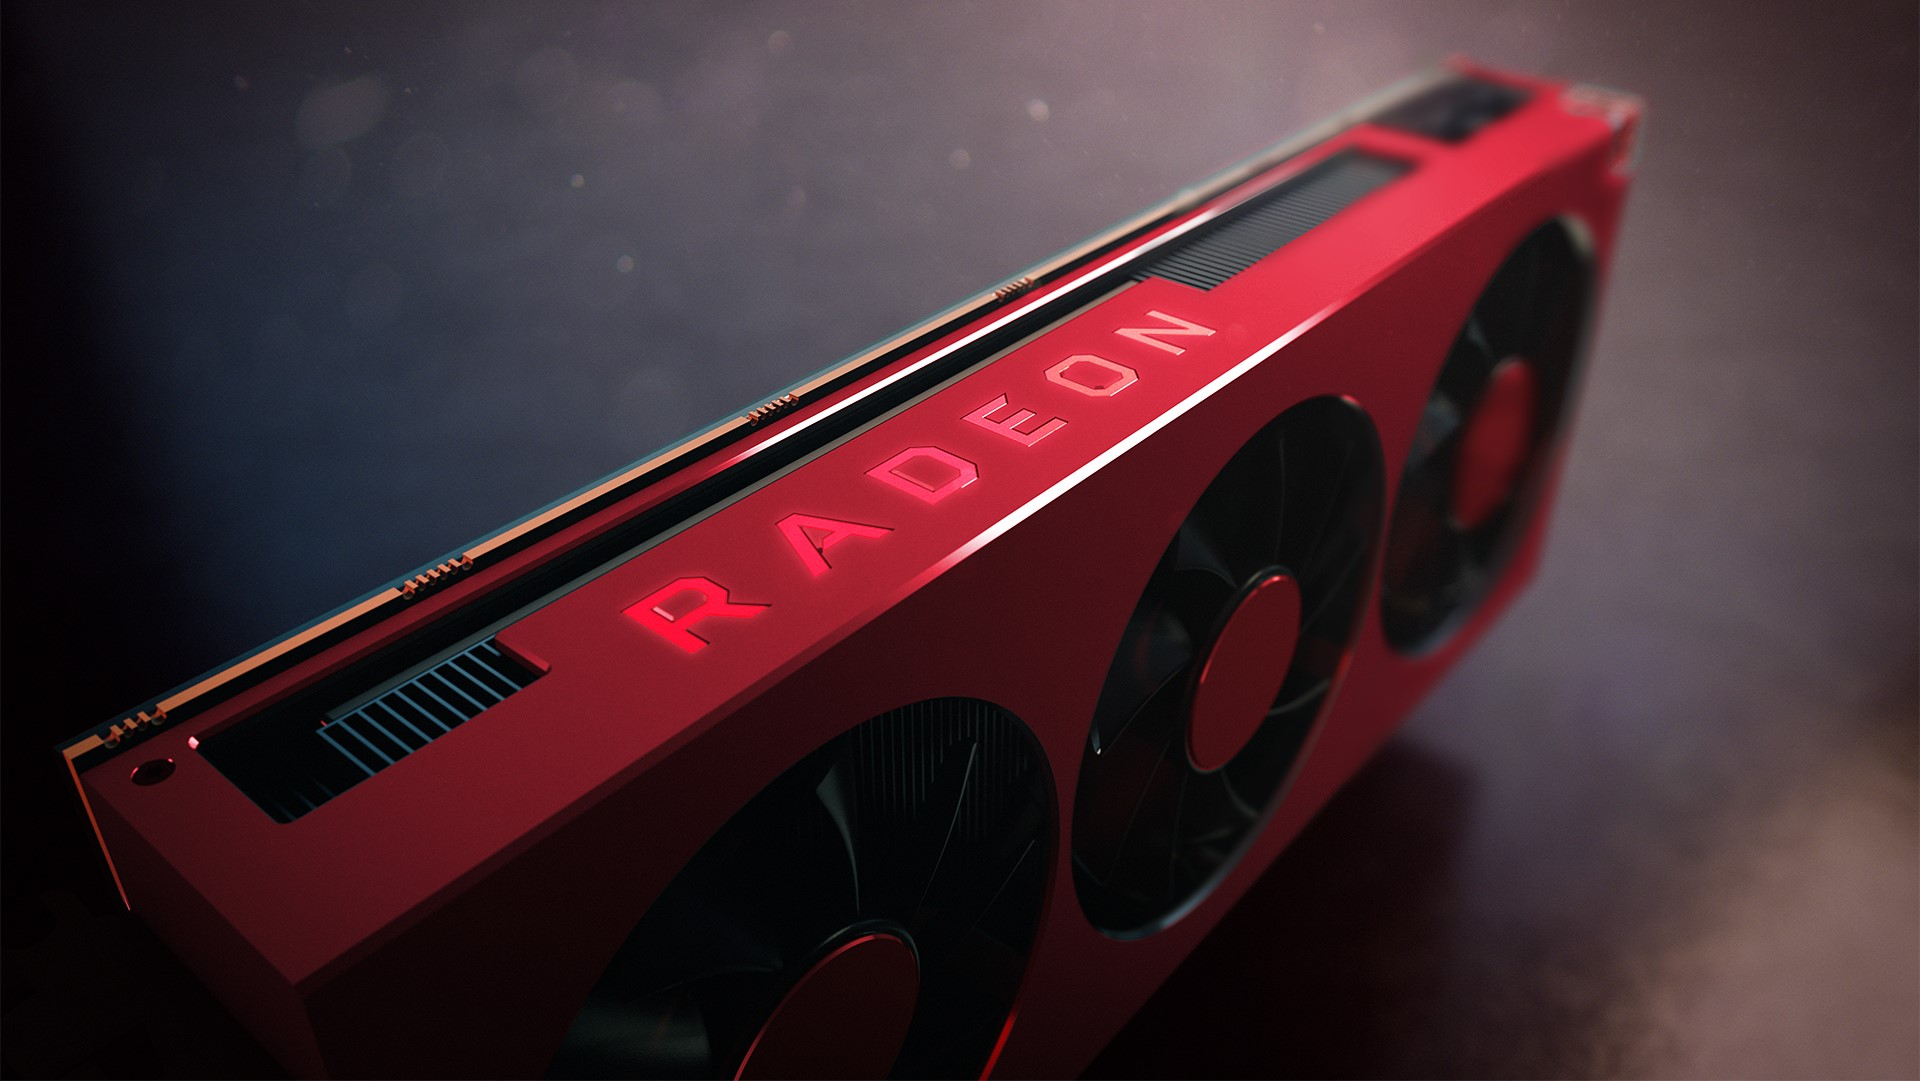 AMD's Big Navi graphics card could arrive at Computex 2020